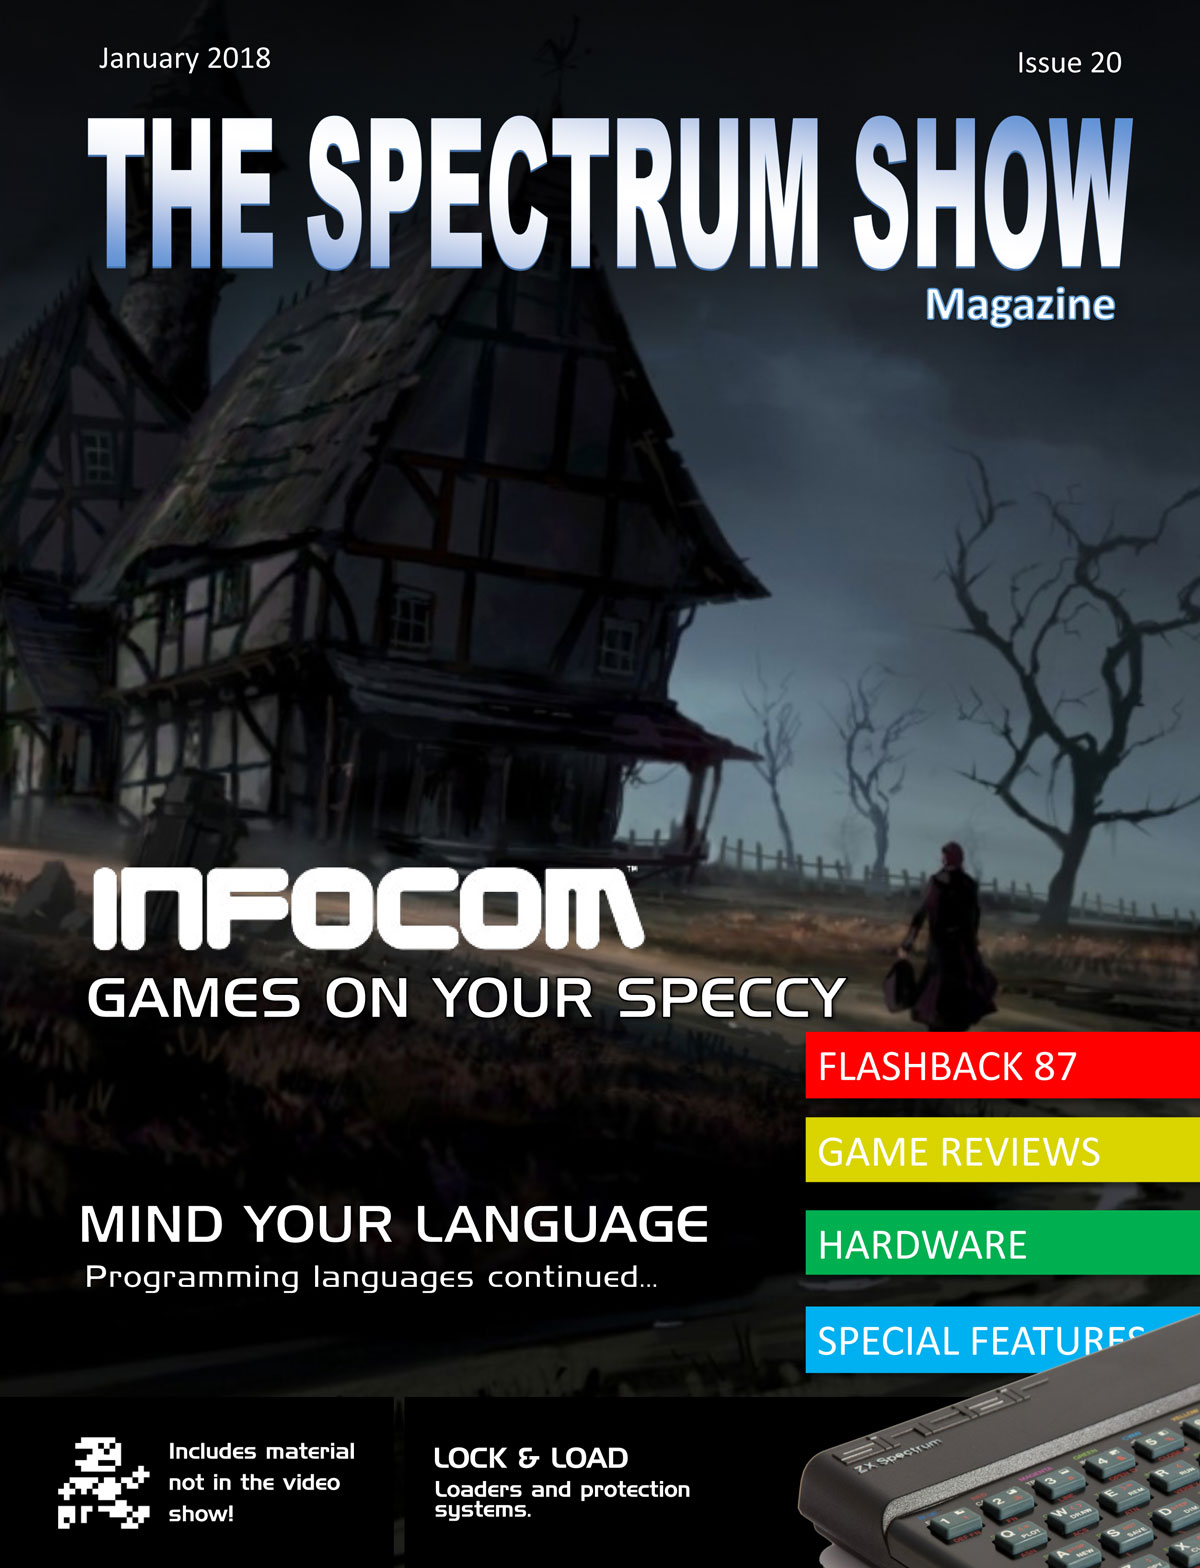 The Spectrum Show Magazine no 20